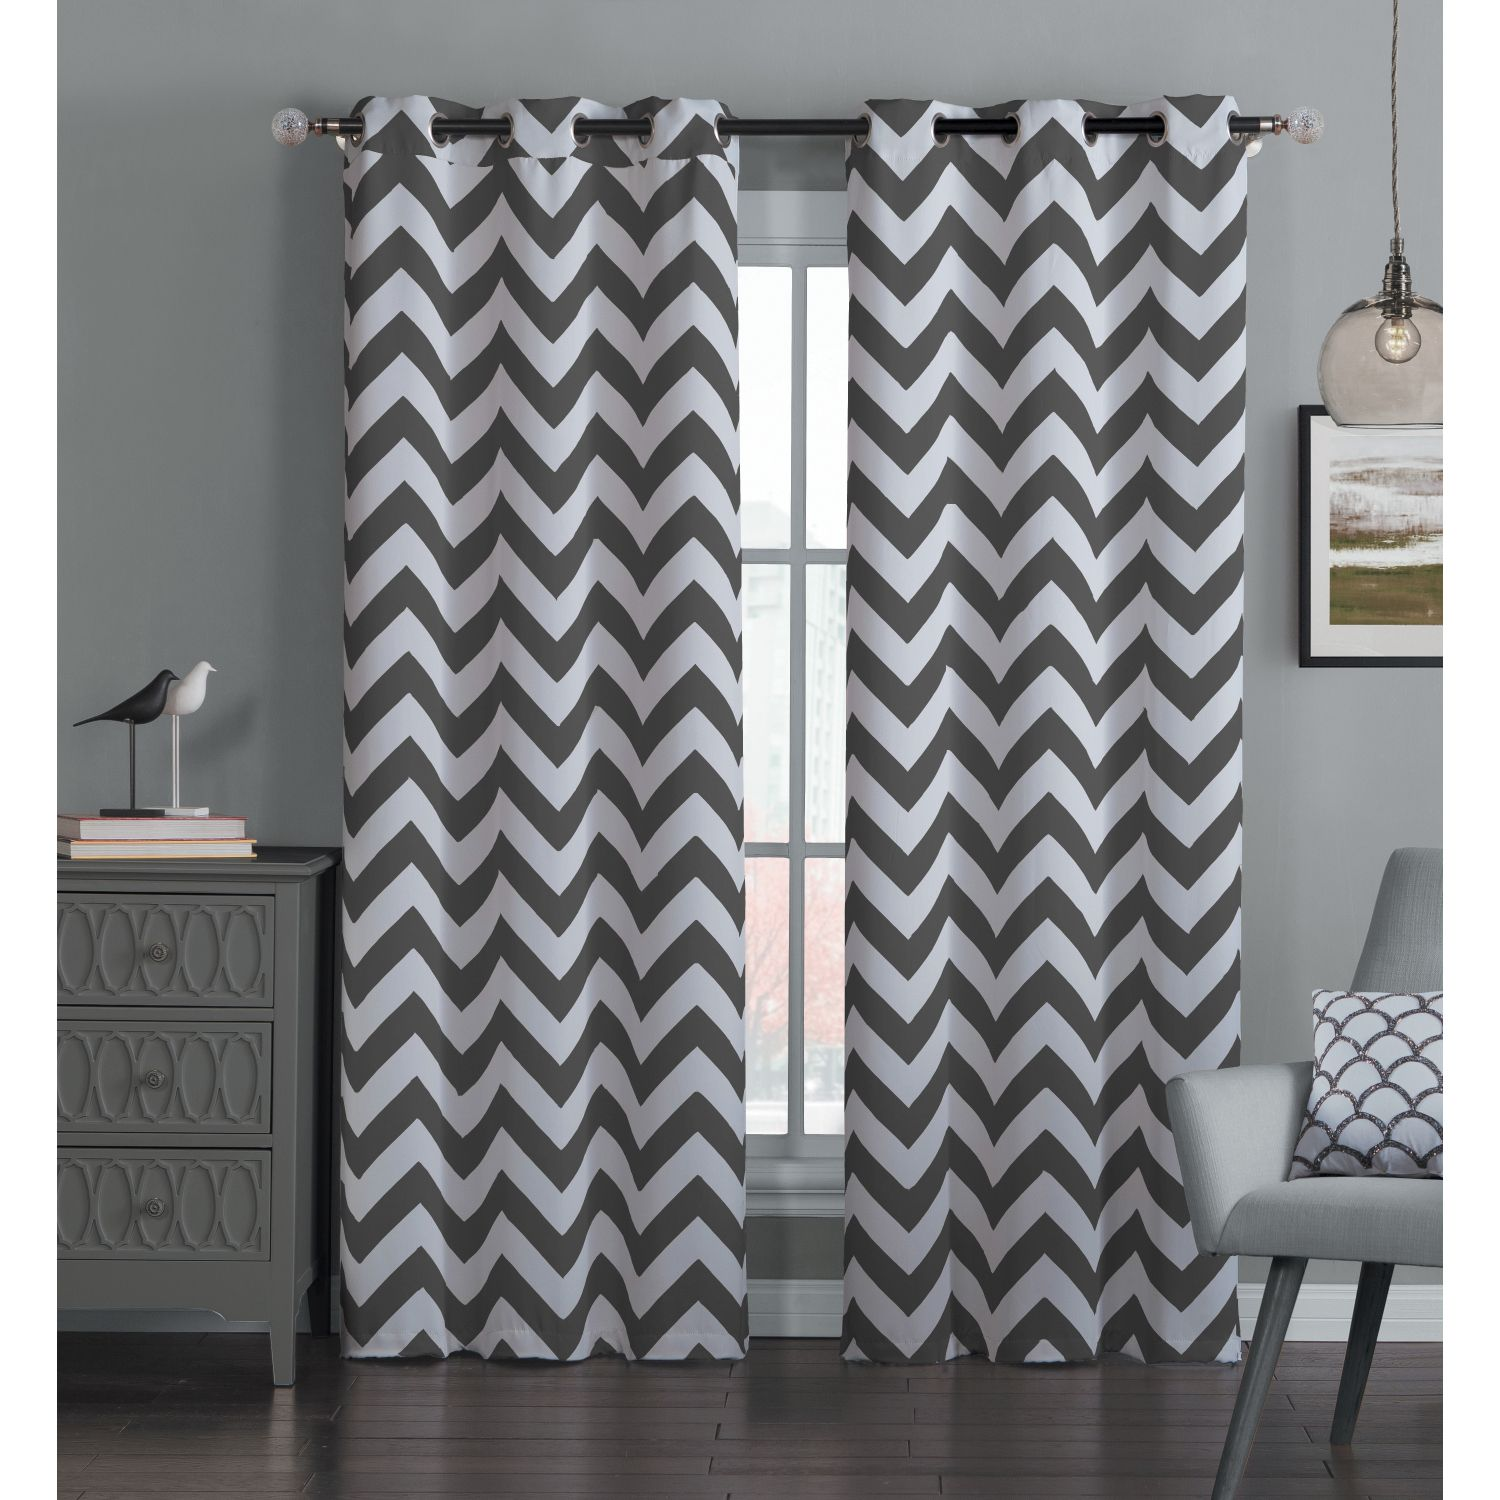 Black And White Chevron Blackout Curtains This Pair Of Blackout Curtains Blocks Out The Bright Morning Sun